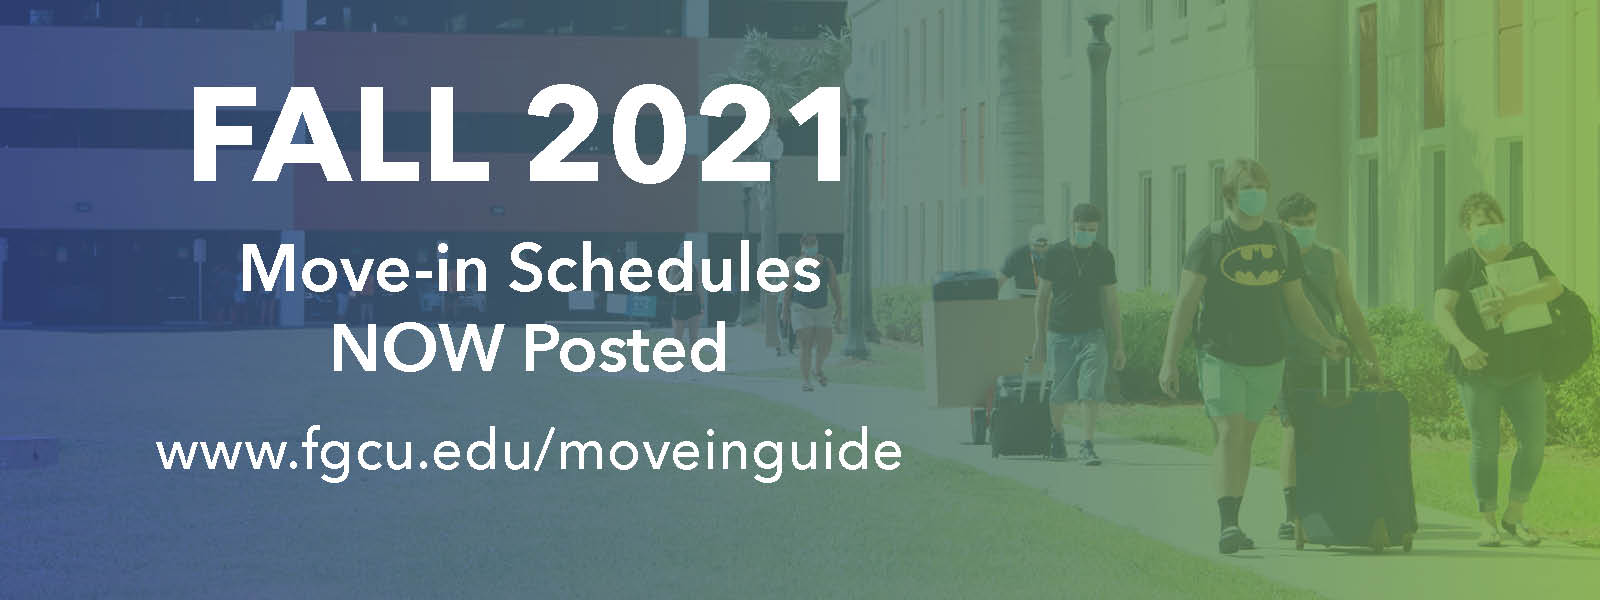 Fall 2021 move-in schedules now posted. www.fgcu.edu/moveinguide